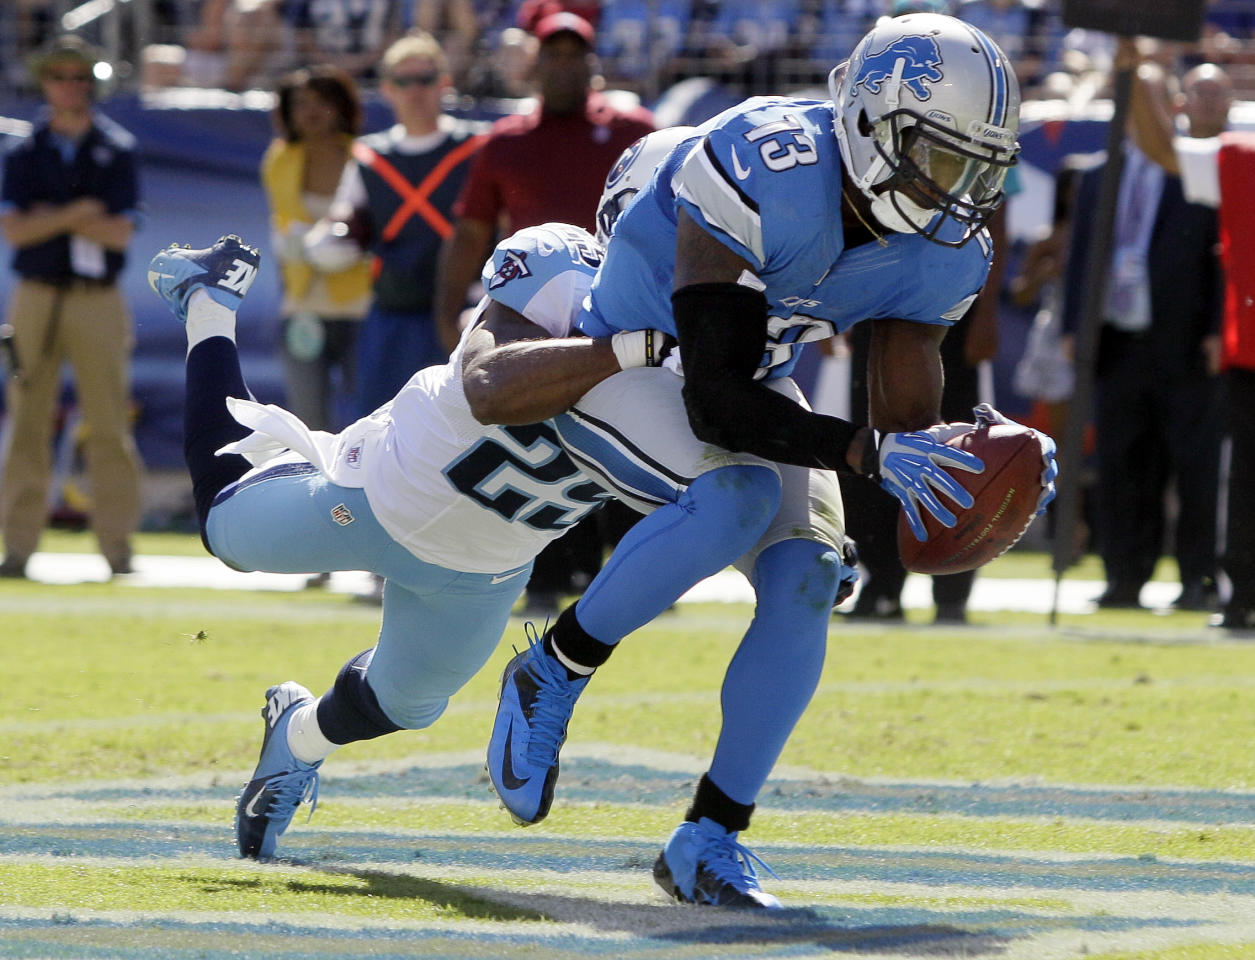 Detroit Lions wide receiver Nate Burleson (13) catches a touchdown pass as he is defended by Tennessee Titans cornerback Ryan Mouton (29) in the fourth quarter of an NFL football game on Sunday, Sept. 23, 2012, in Nashville, Tenn. (AP Photo/Wade Payne)